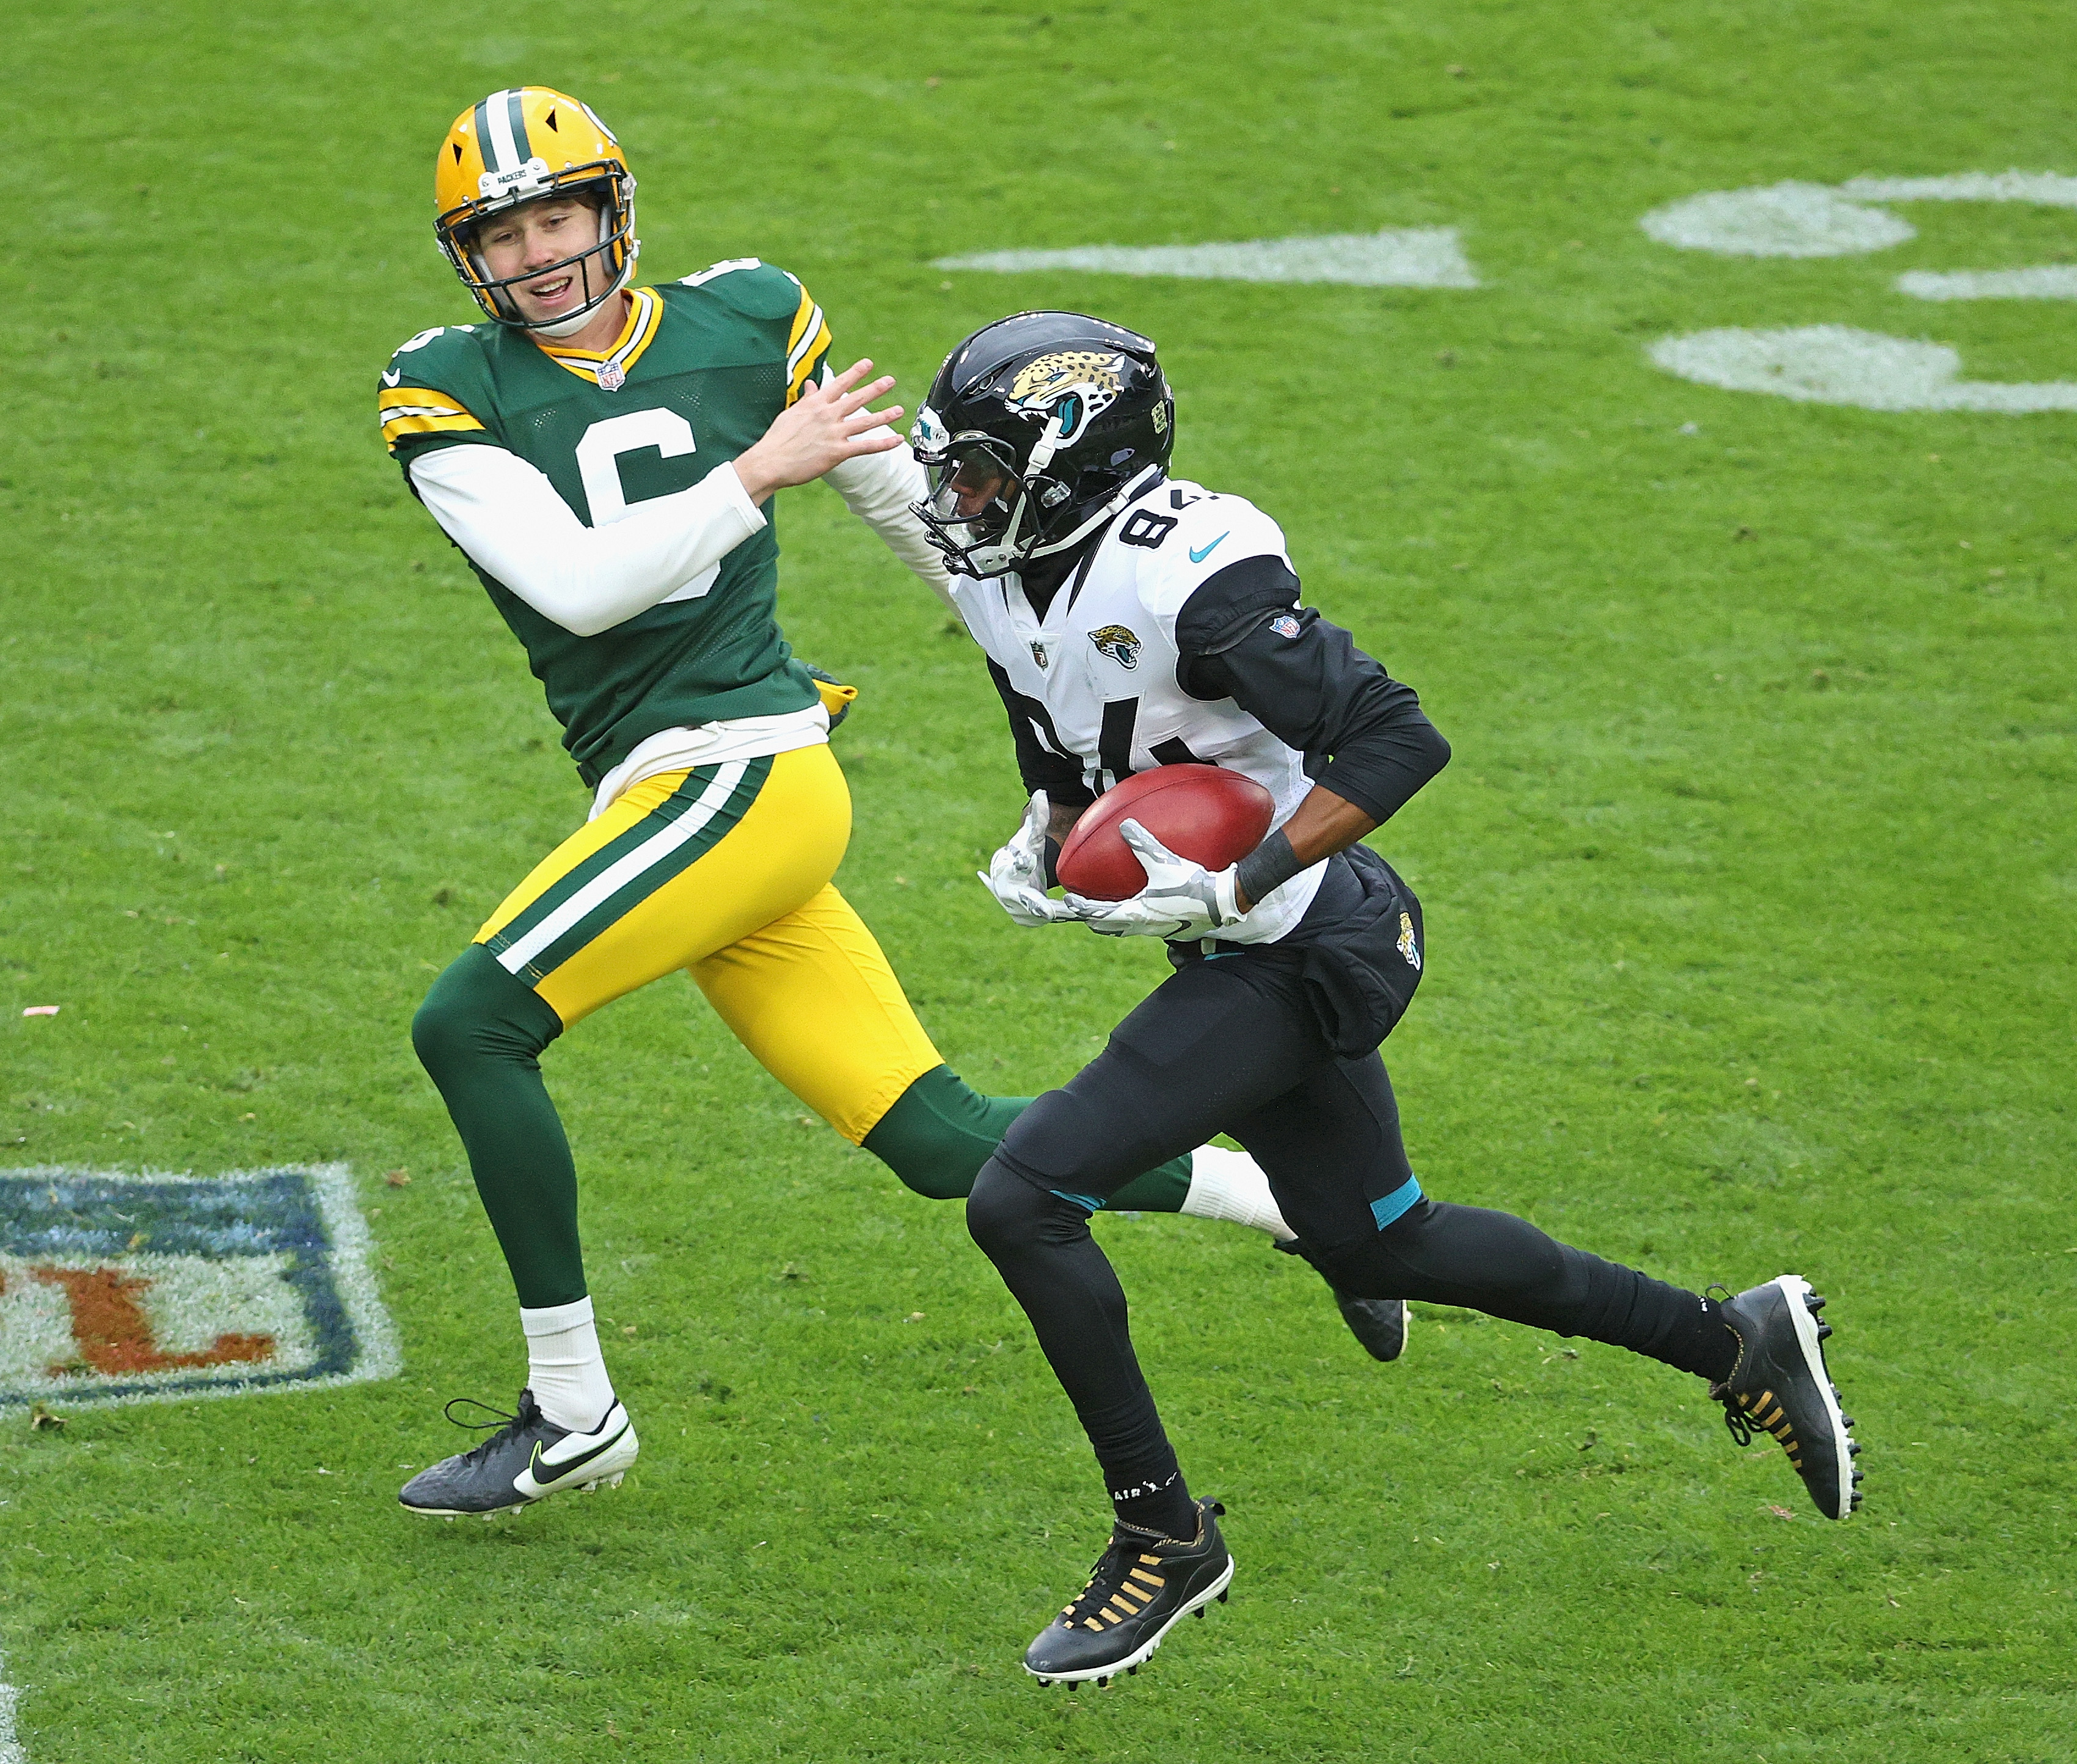 Jacksonville Jaguars v Green Bay Packers